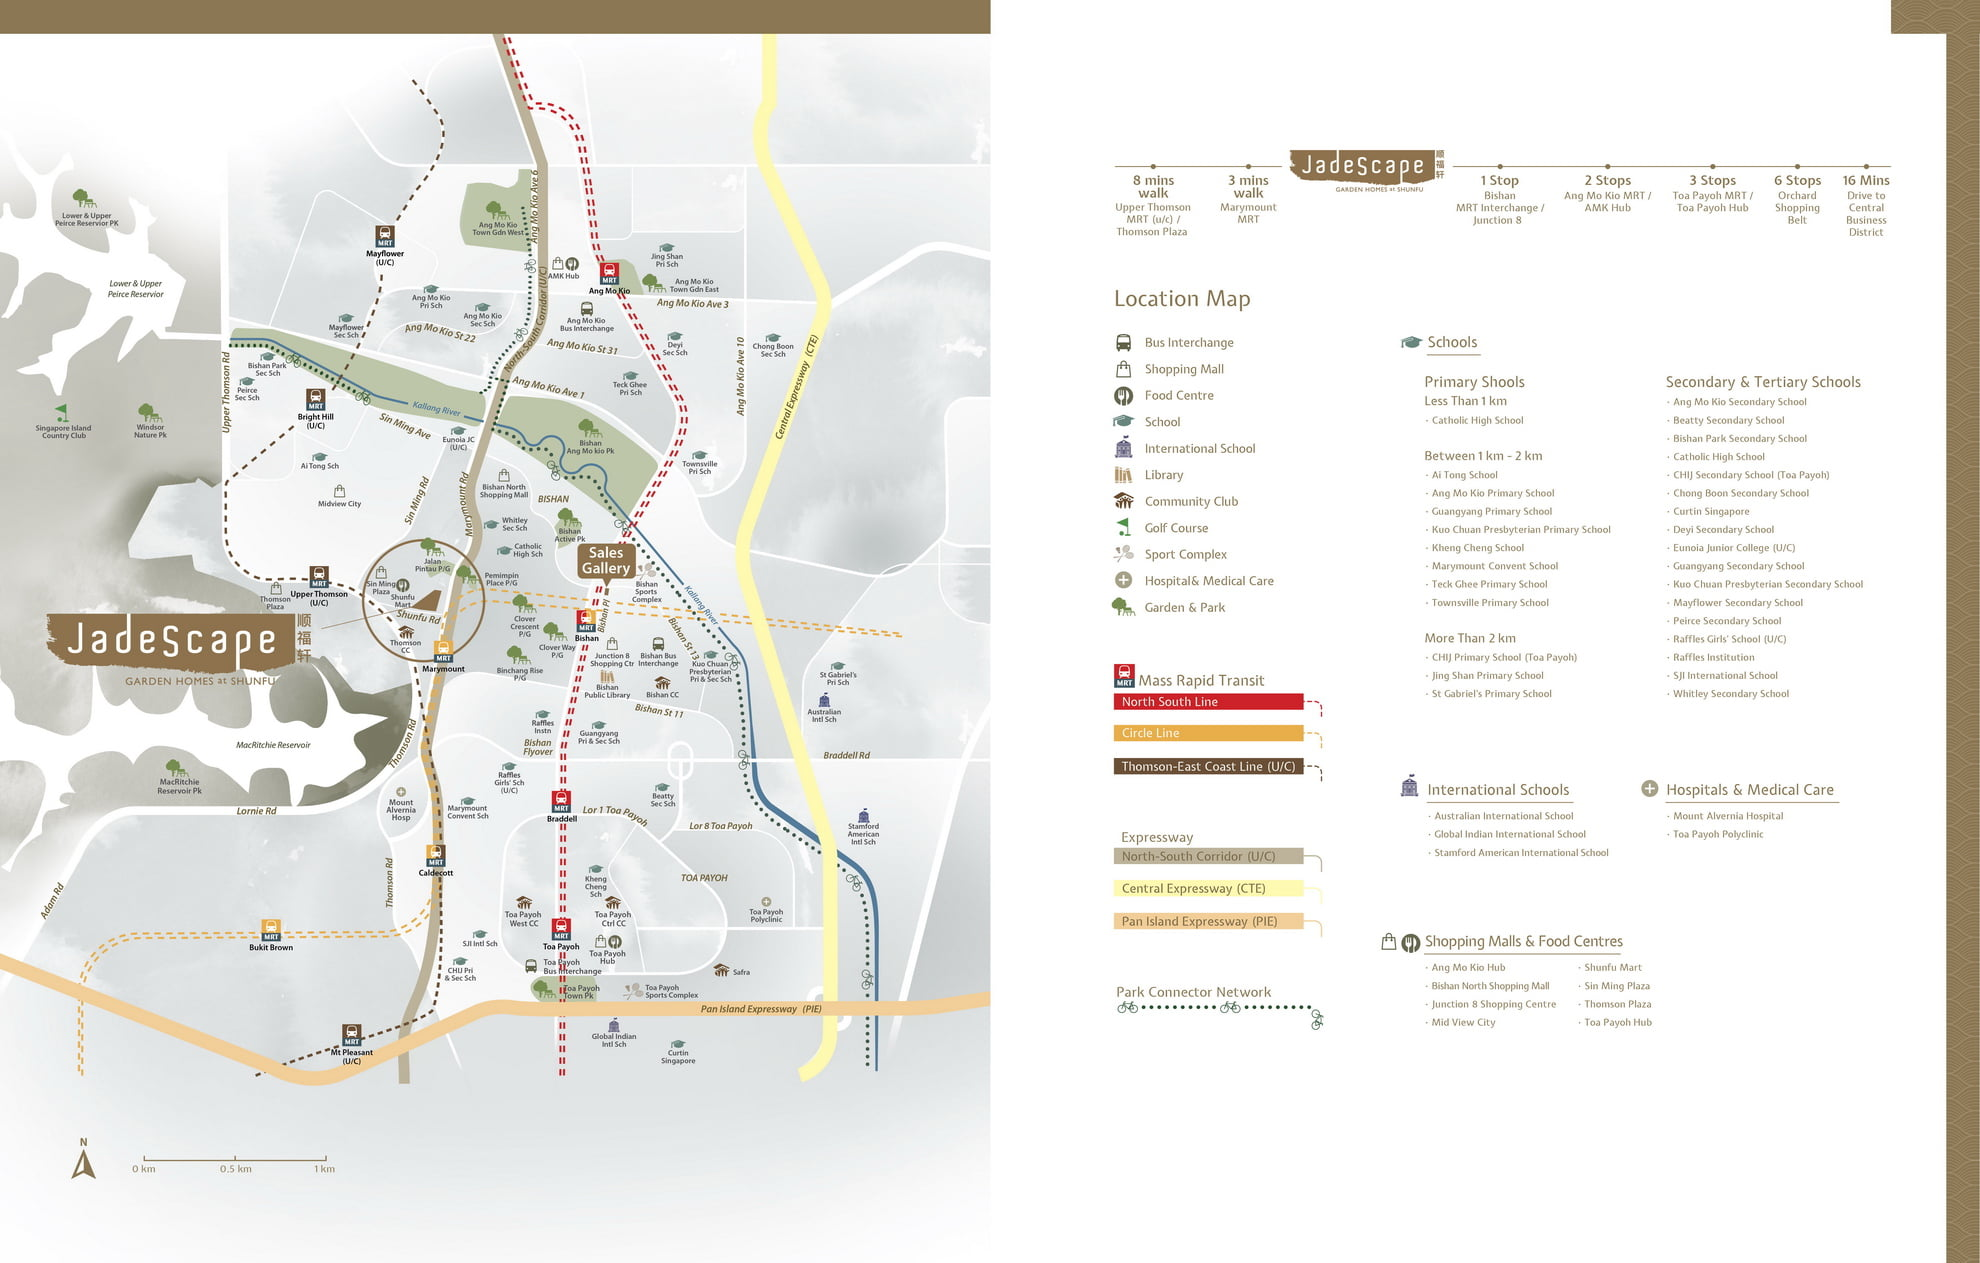 the-jadescape-location-map-bishan